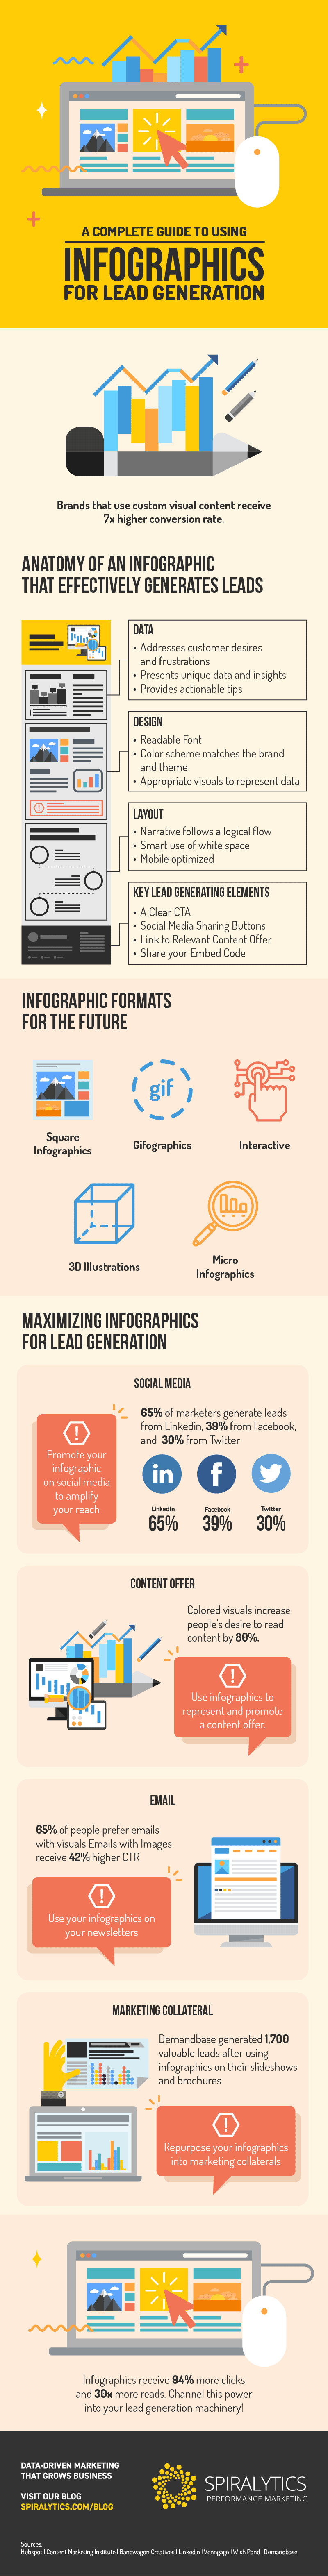 Infographic: How to Use Infographics for Lead Generation